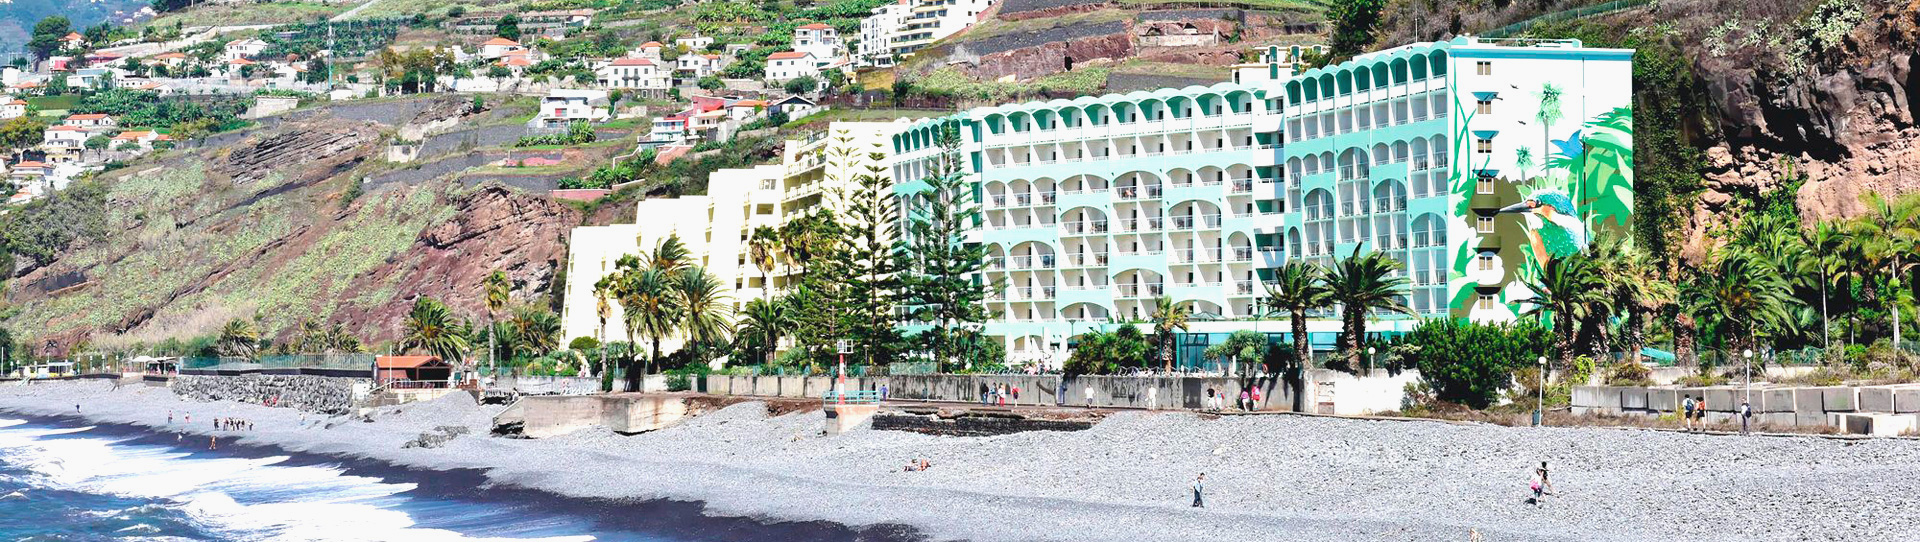 Pestana Ocean Bay - Photo 3